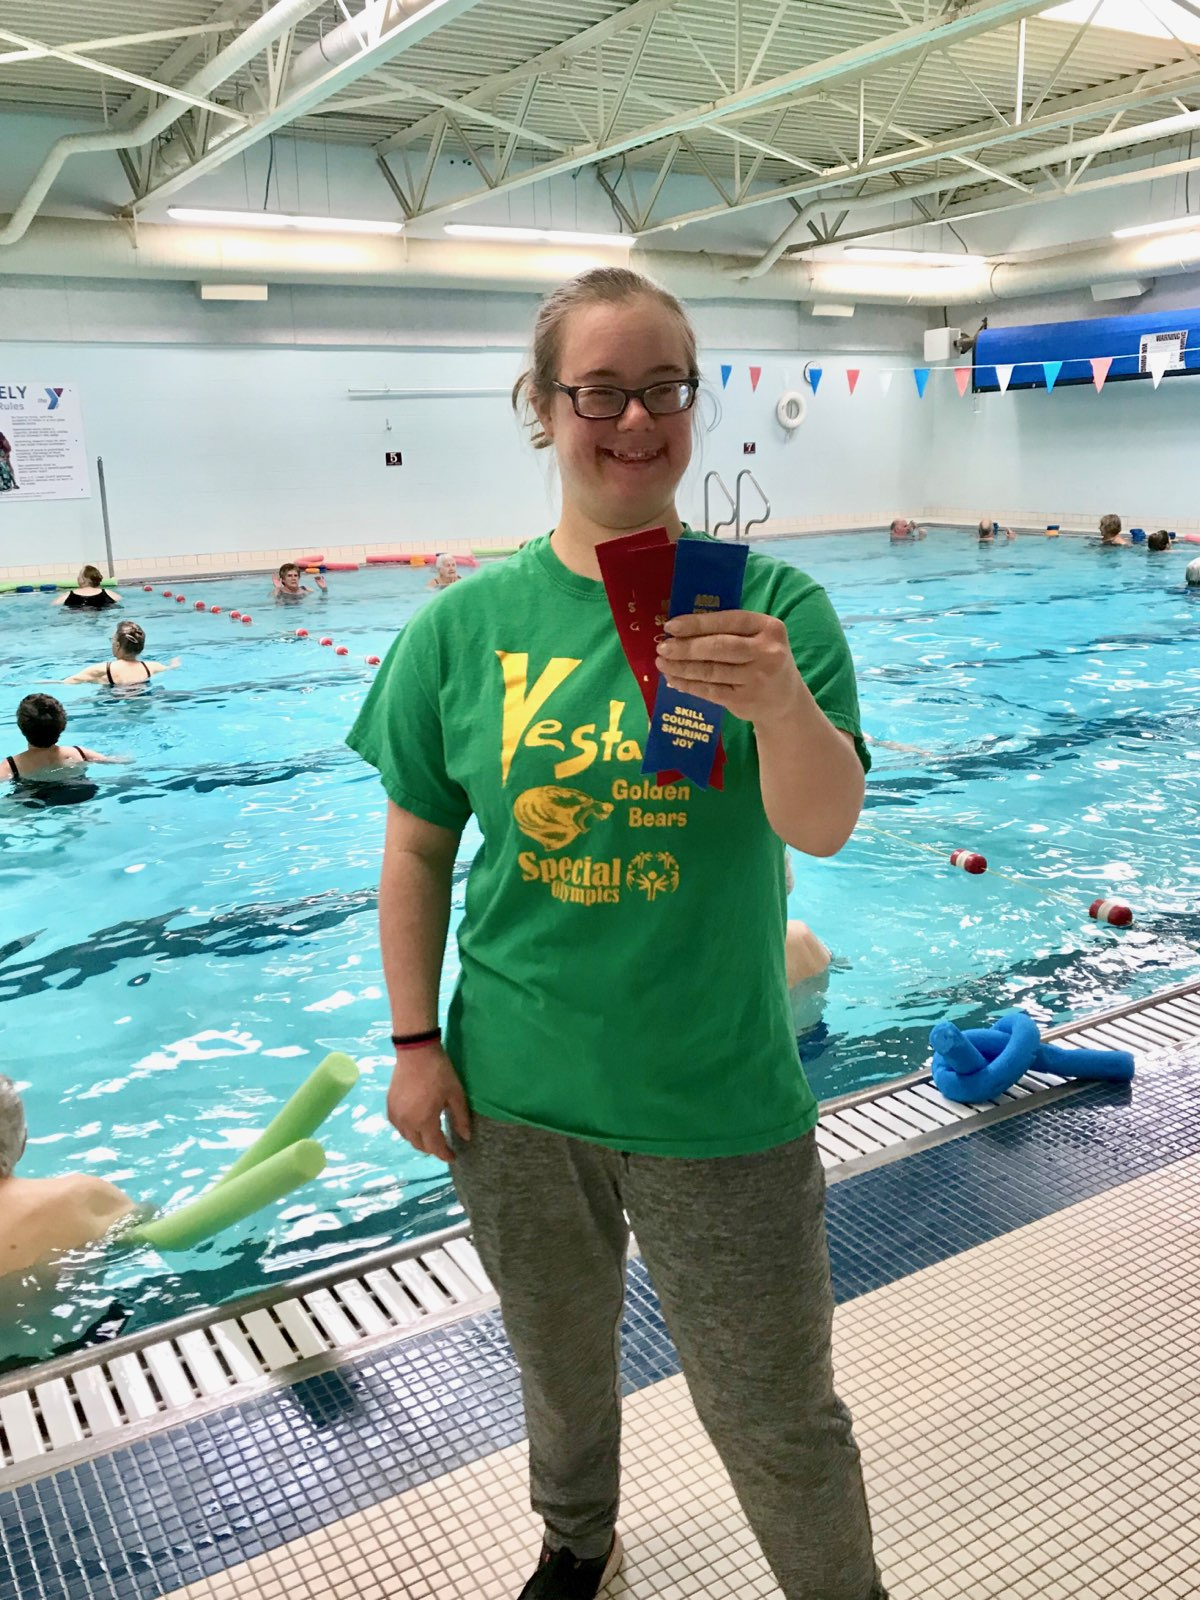 82cac89cecd Jessica s water exercise classes anxiously awaited the results of her  Saturday March 23rd Special Olympic Swim Meet. Everyone in the pool broke  out in ...